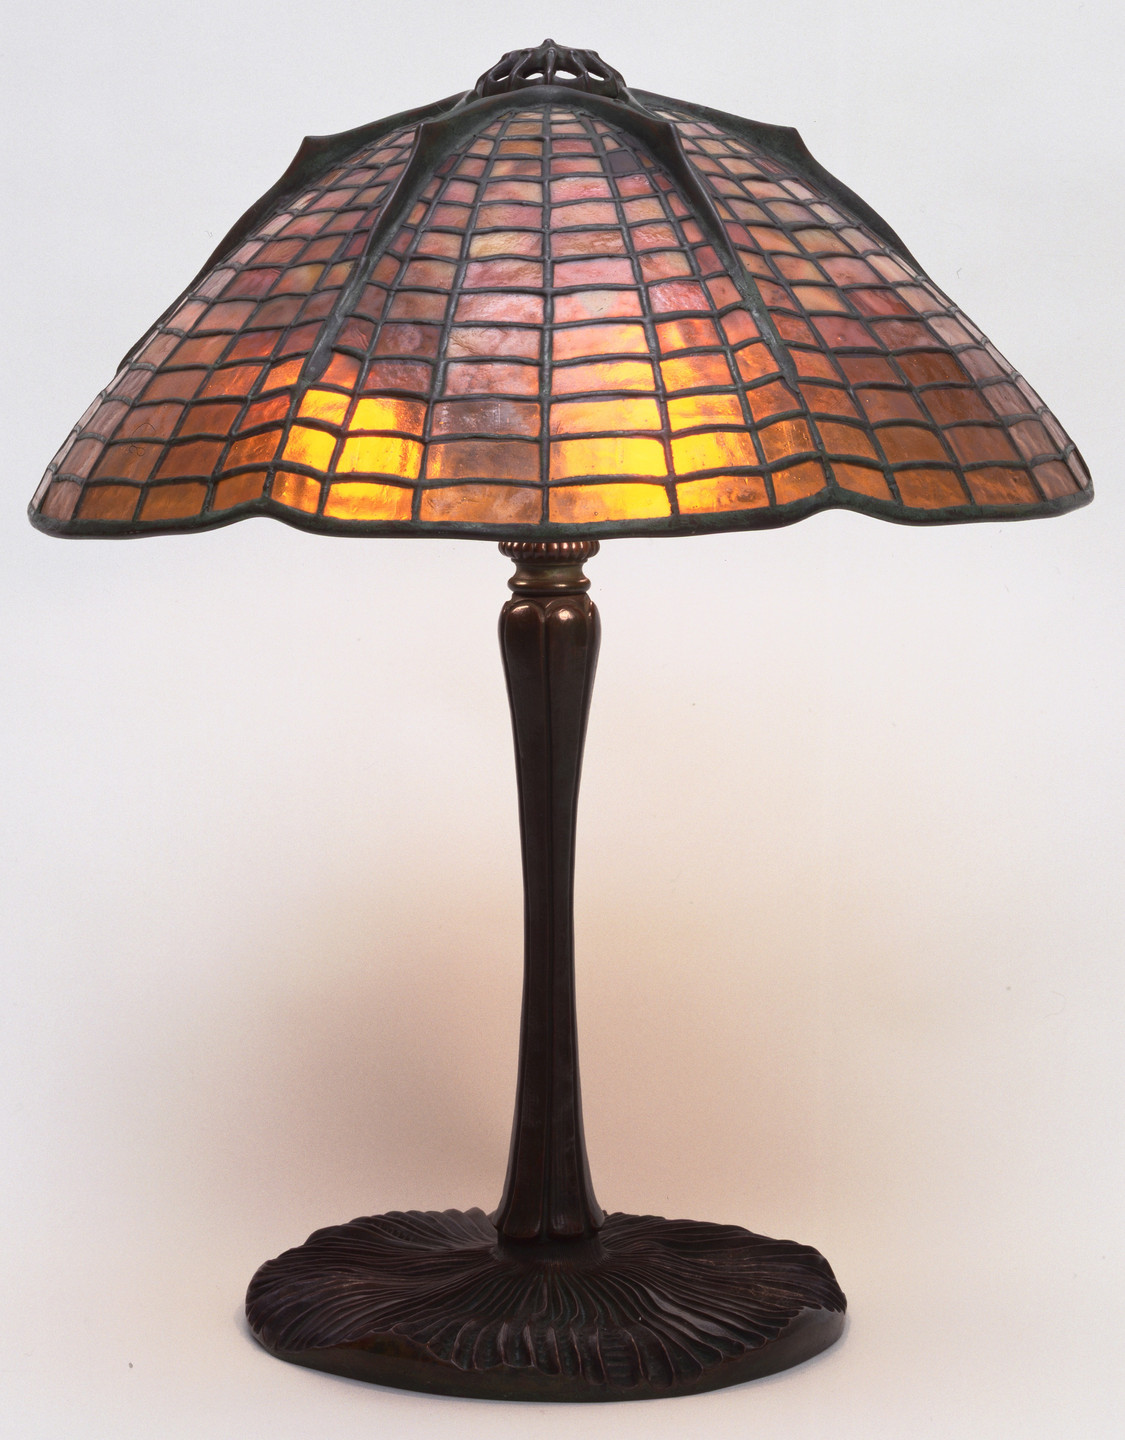 Louis Comfort Tiffany. Table Lamp. c. 1900